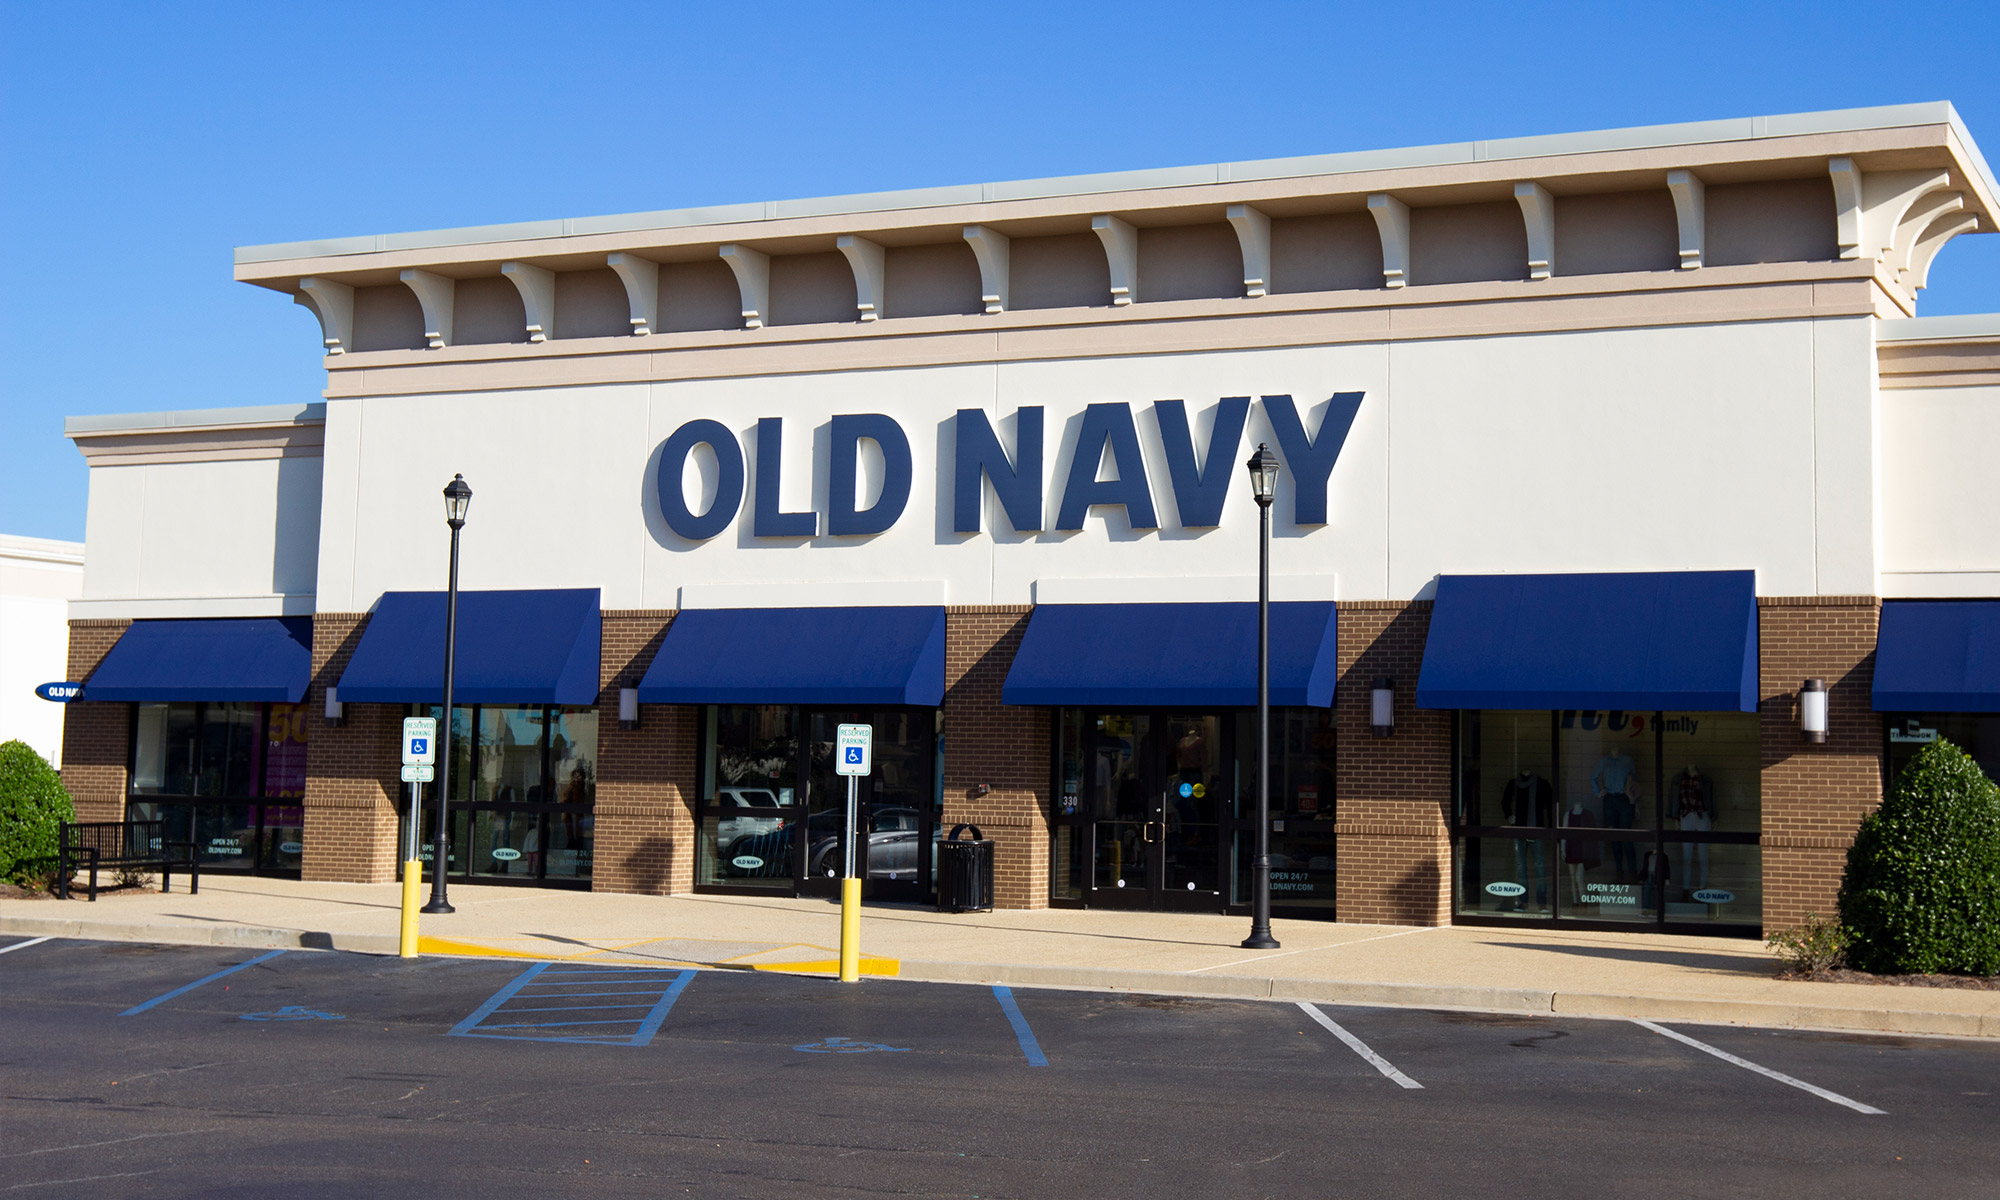 Old Navy in Hammond, Louisiana